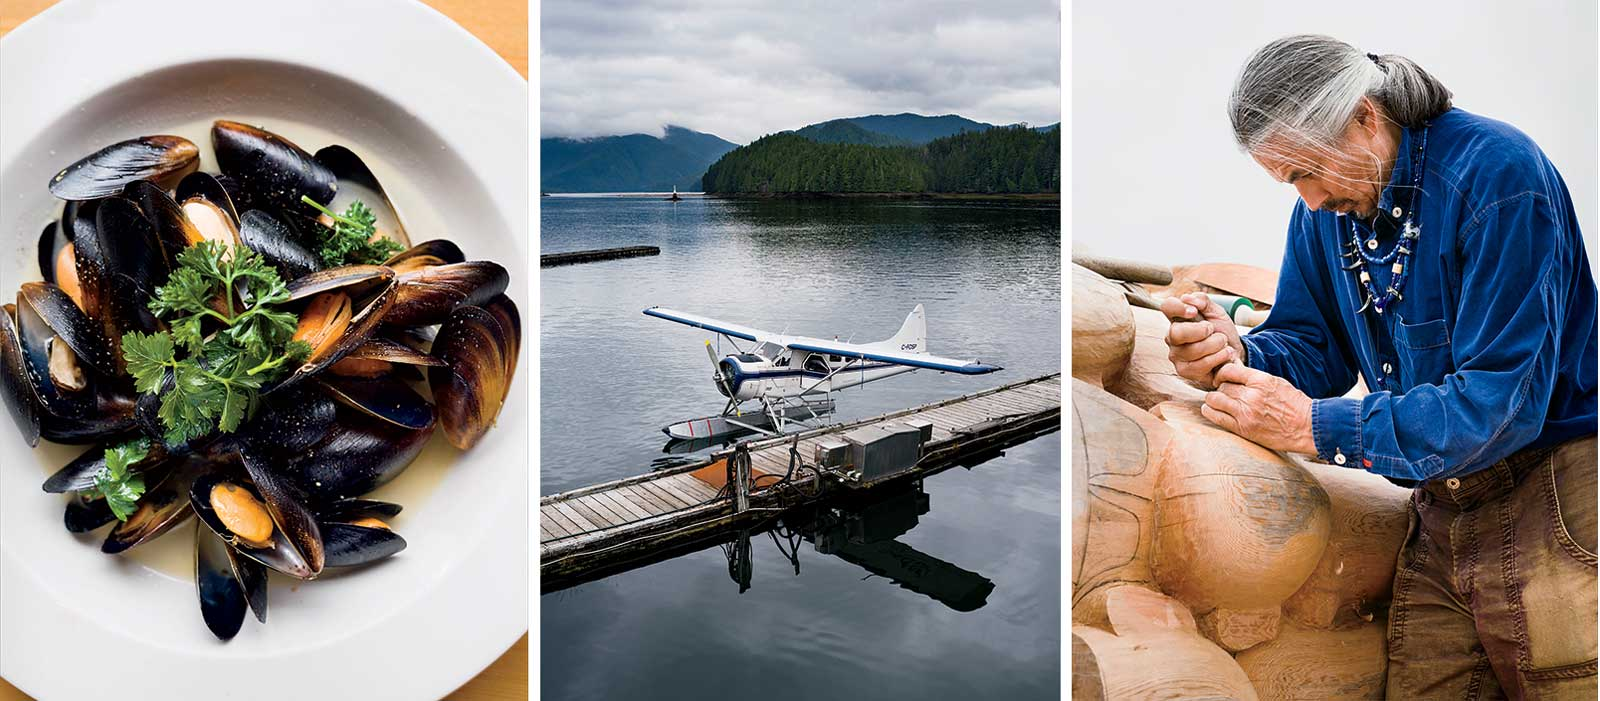 Food, Planes, and Carvings in British Columbia